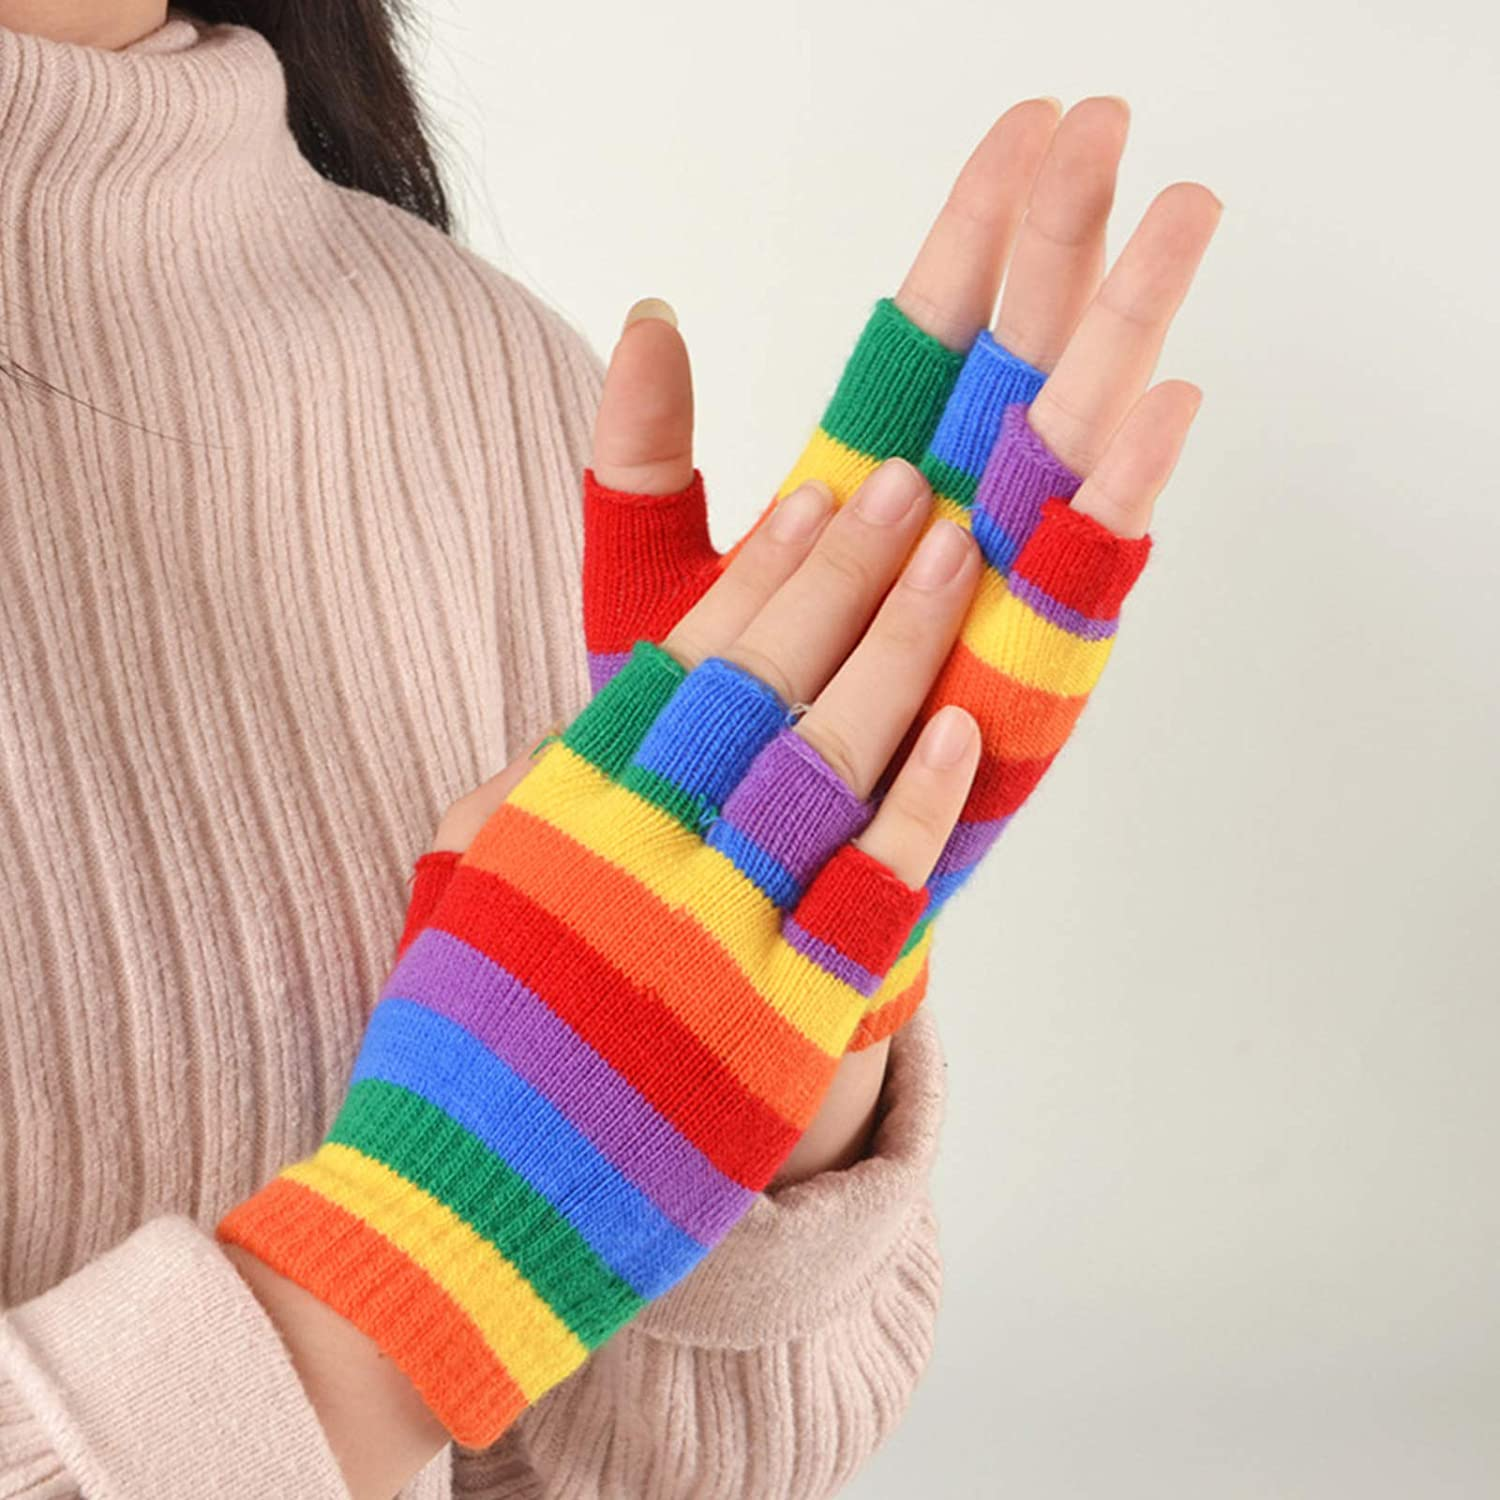 NINGYE Kids Winter Warm Knitted Gloves Rainbow Colorful Striped Mittens